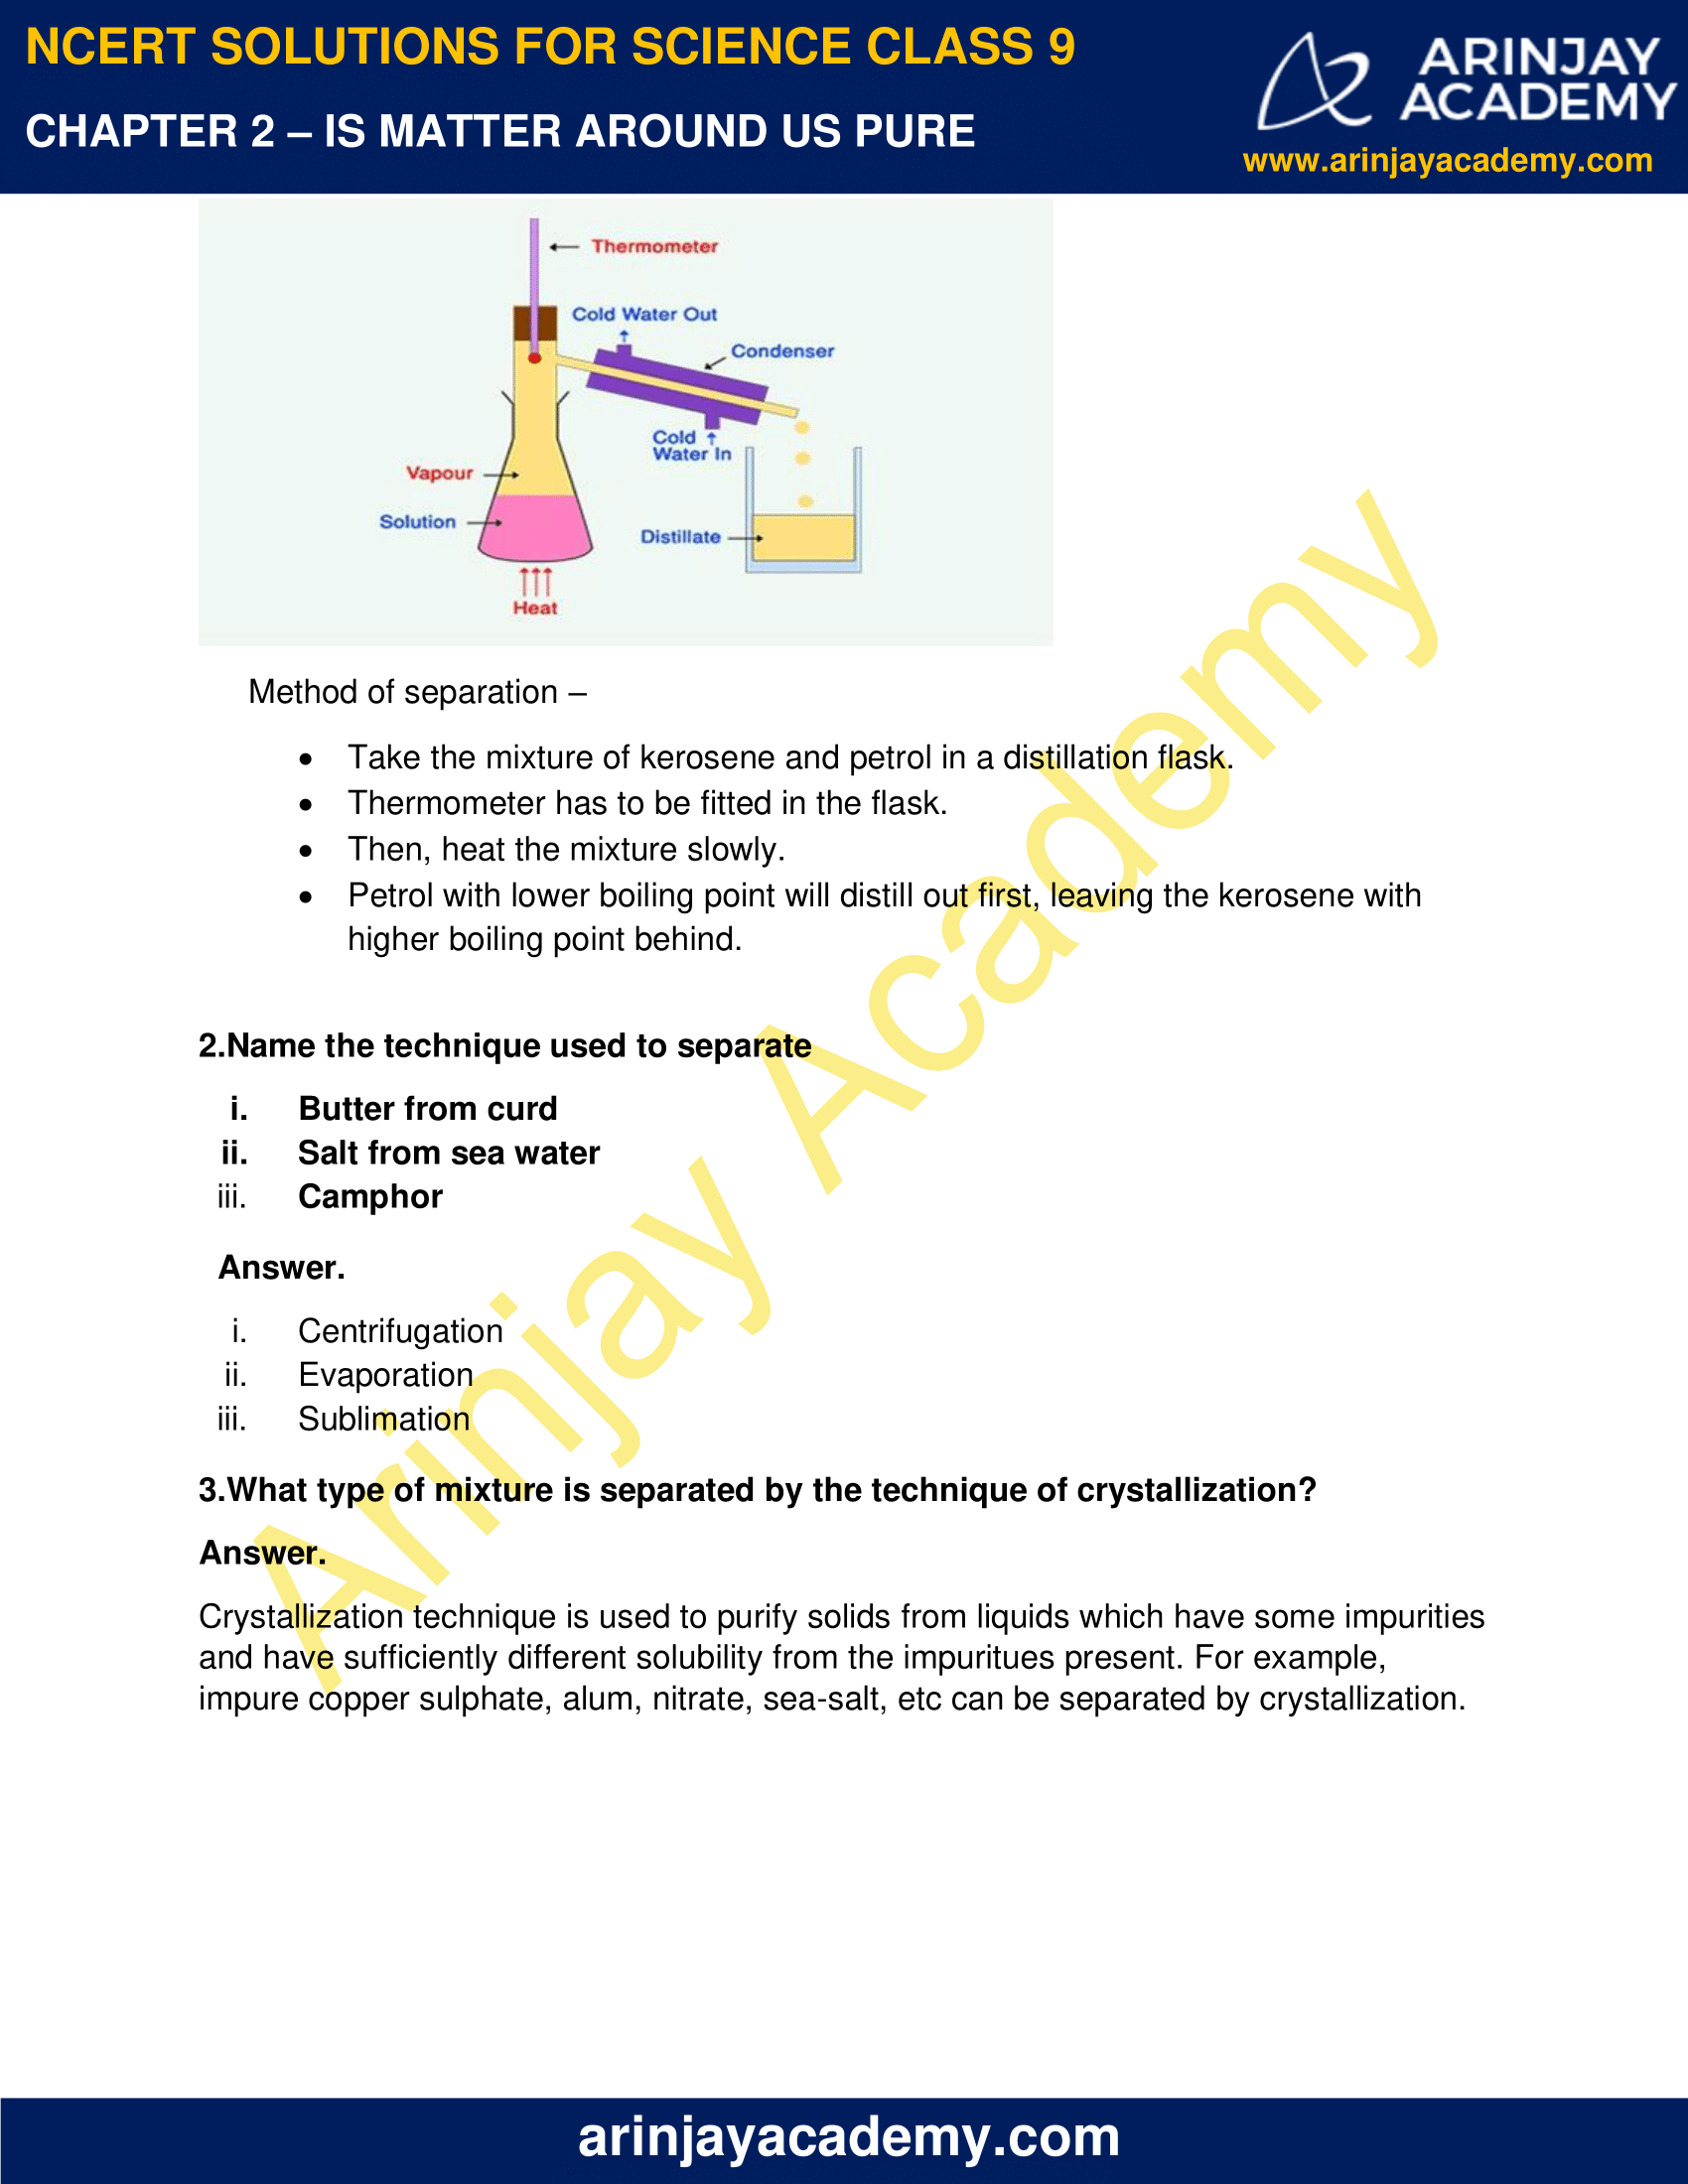 NCERT Solutions for Class 9 Science Chapter 2 Is matter around us pure image 3